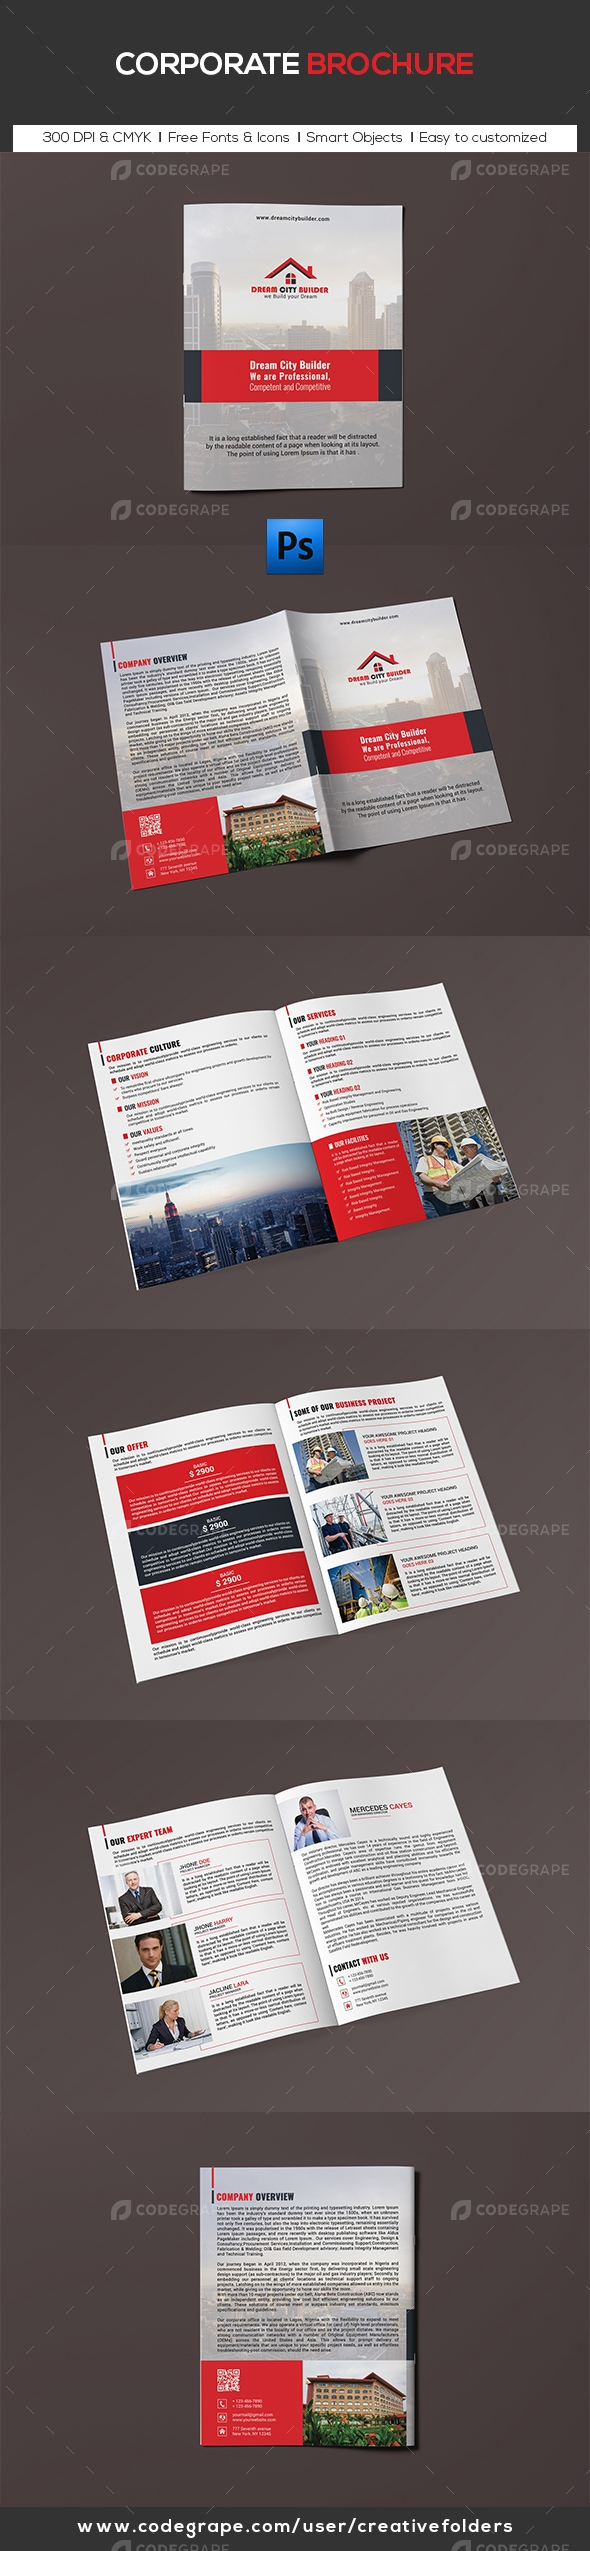 Real Corporate Brochure